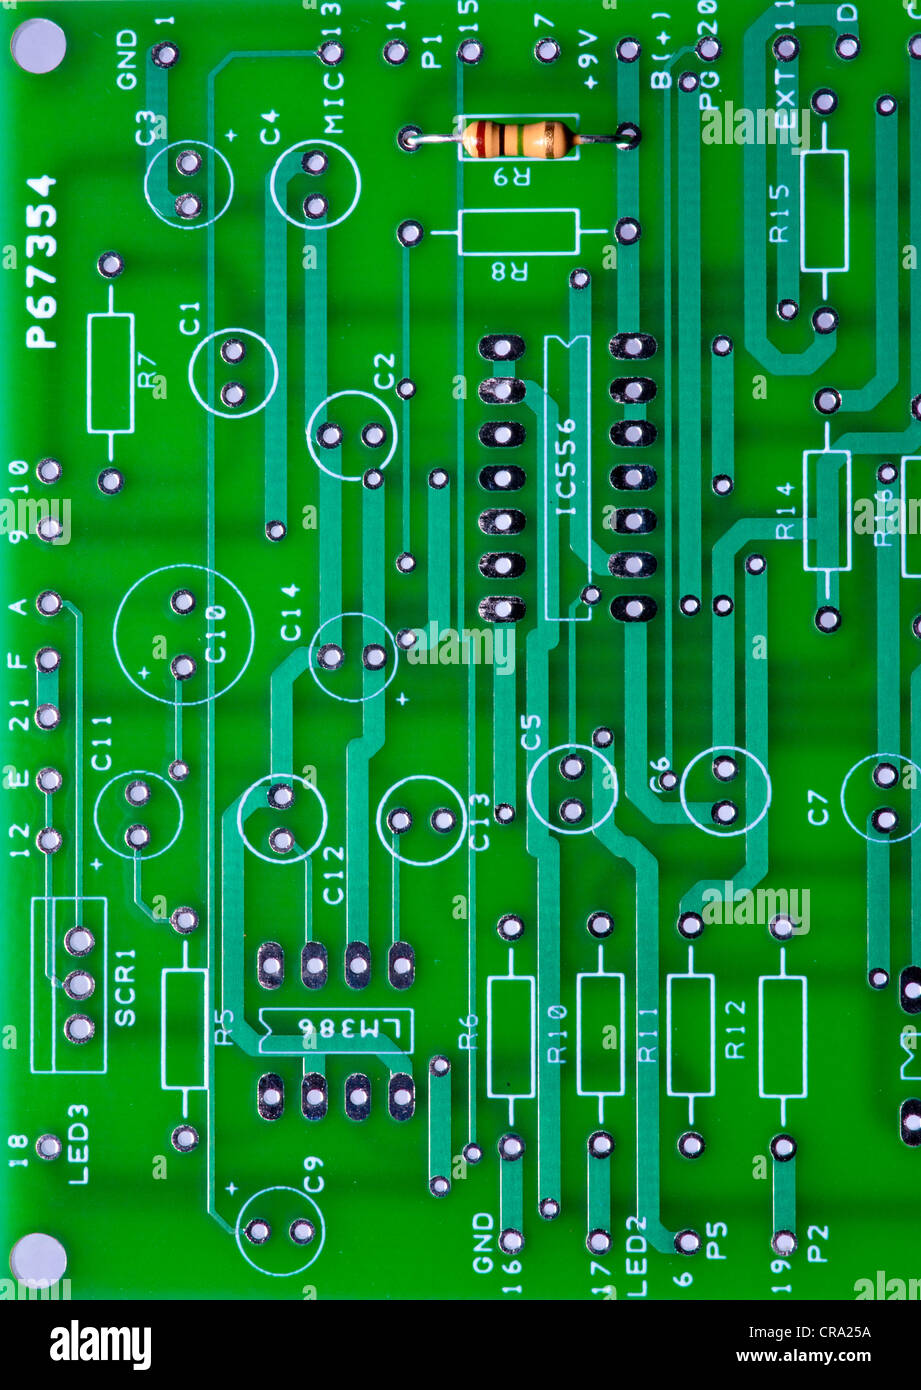 PC Circuit board with a schematic printed on it with a single resistor in it - Stock Image